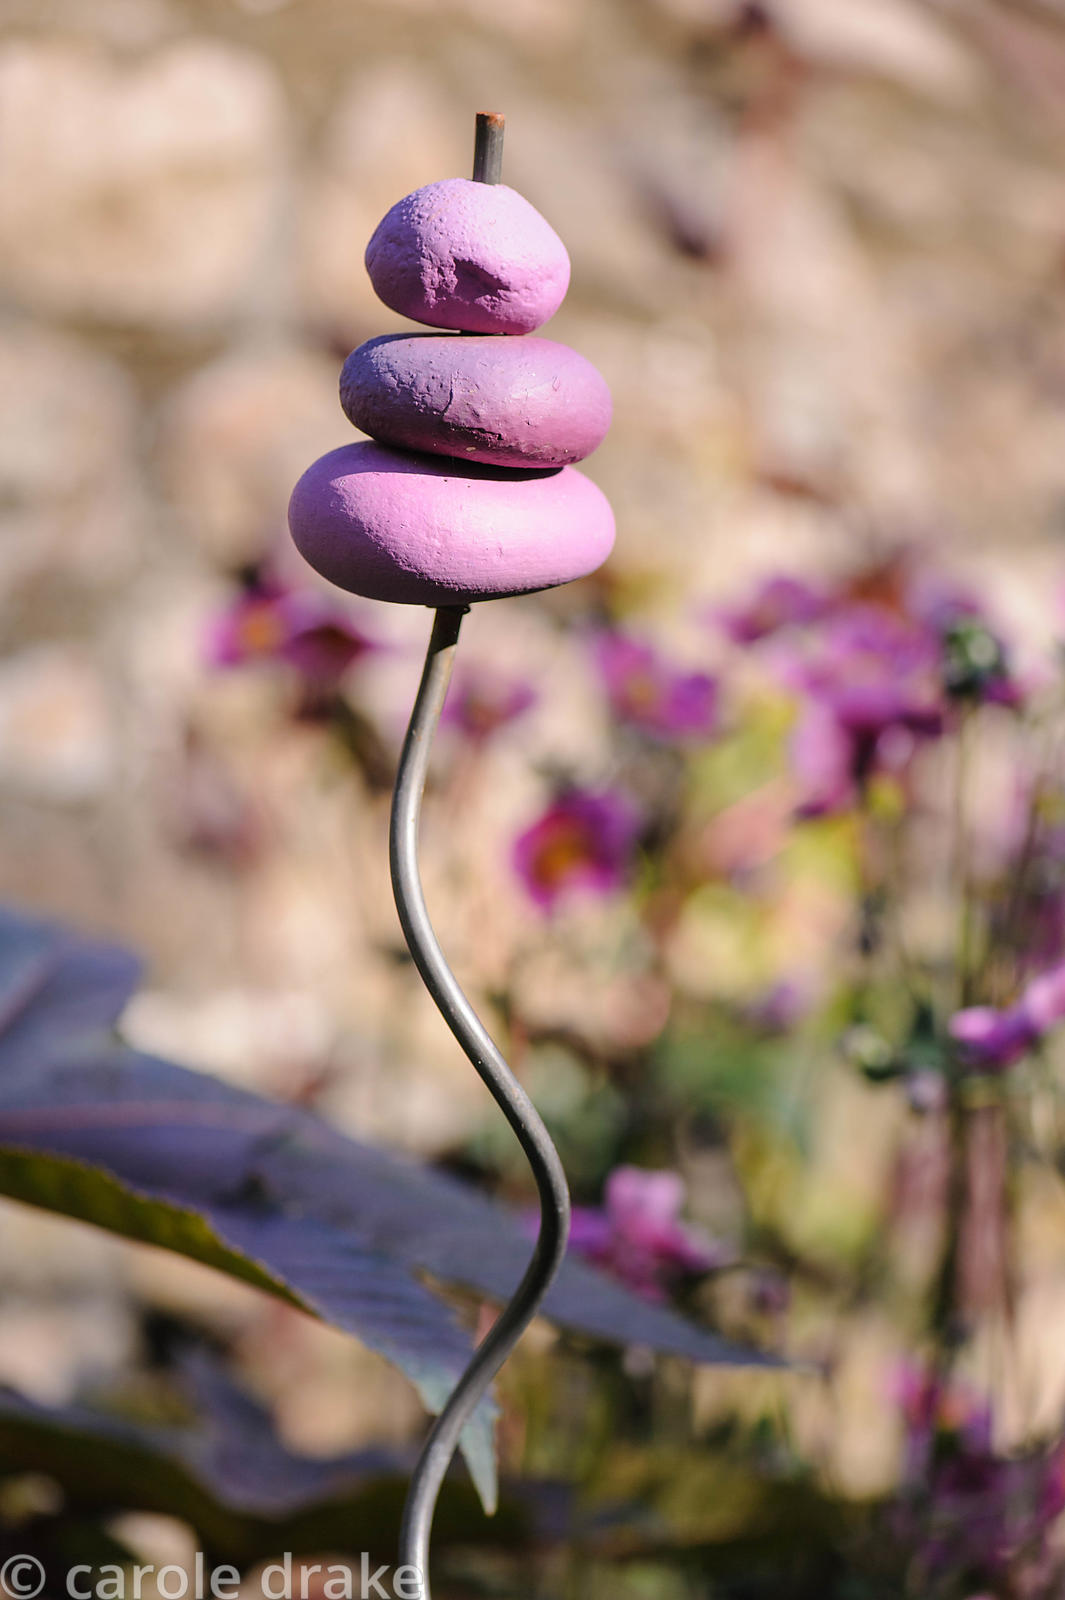 Decorative feature made of purple painted pebbles threaded onto a metal rod.